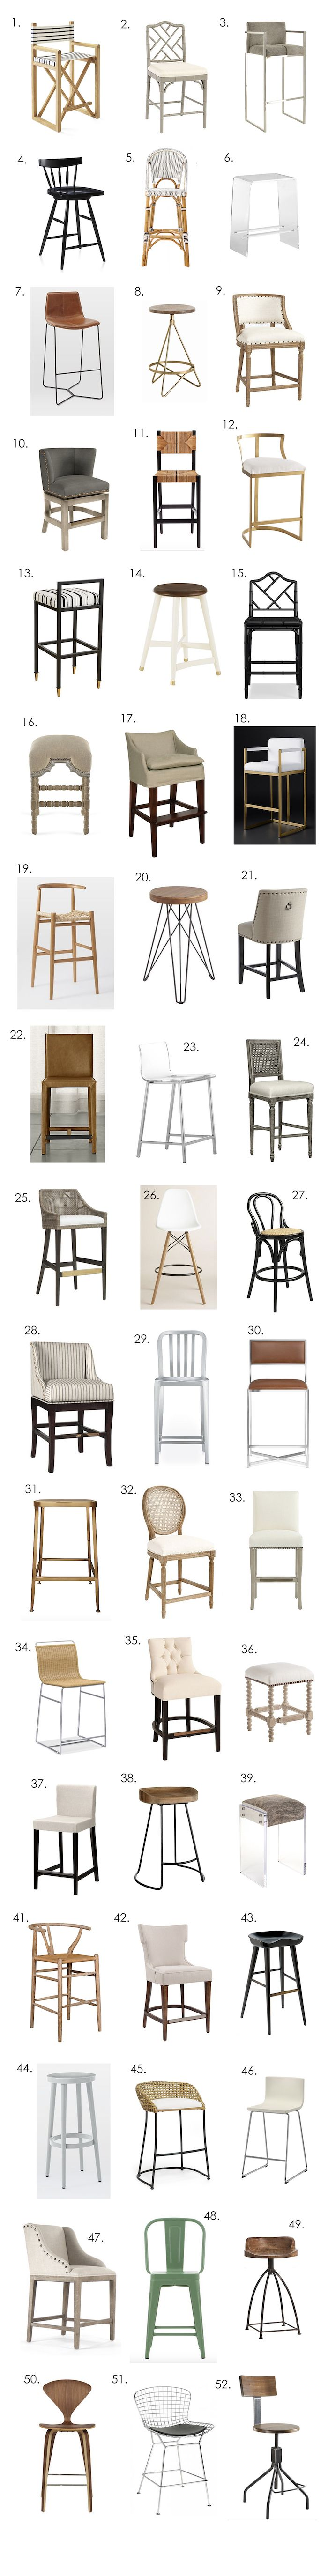 counter stools countertop stools kitchen Giant Counter Stool Roundup